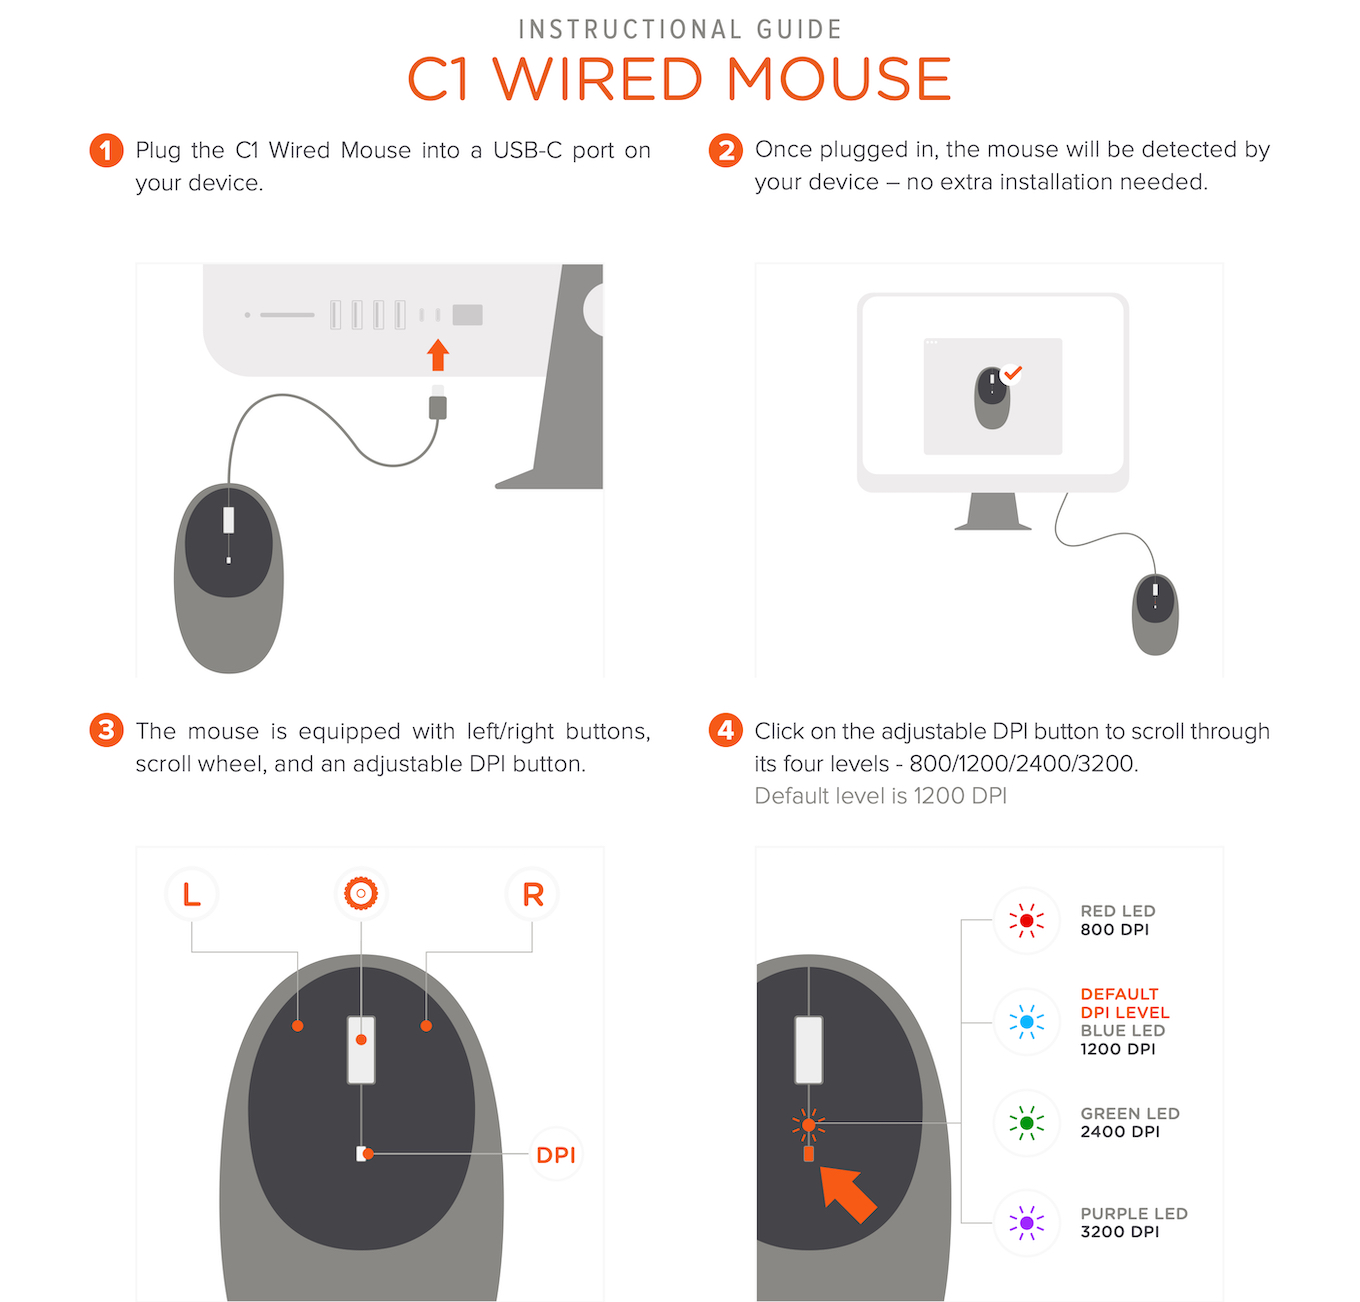 Satechi C1 USB-C Wired Mouse guide